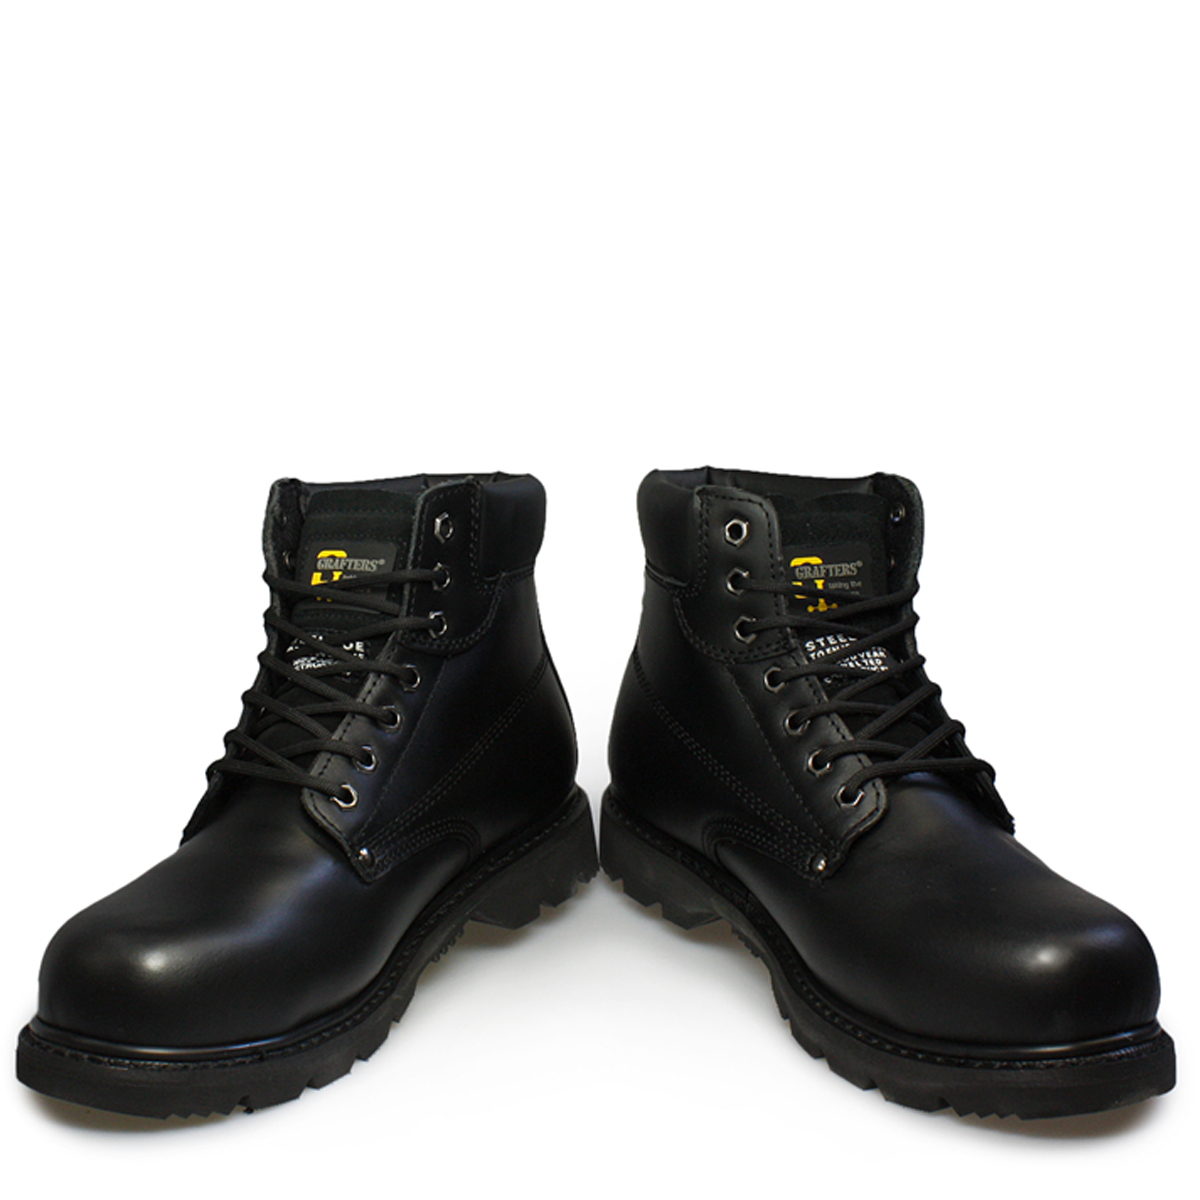 Mens Safety Work Shoes Black Leather Grafters